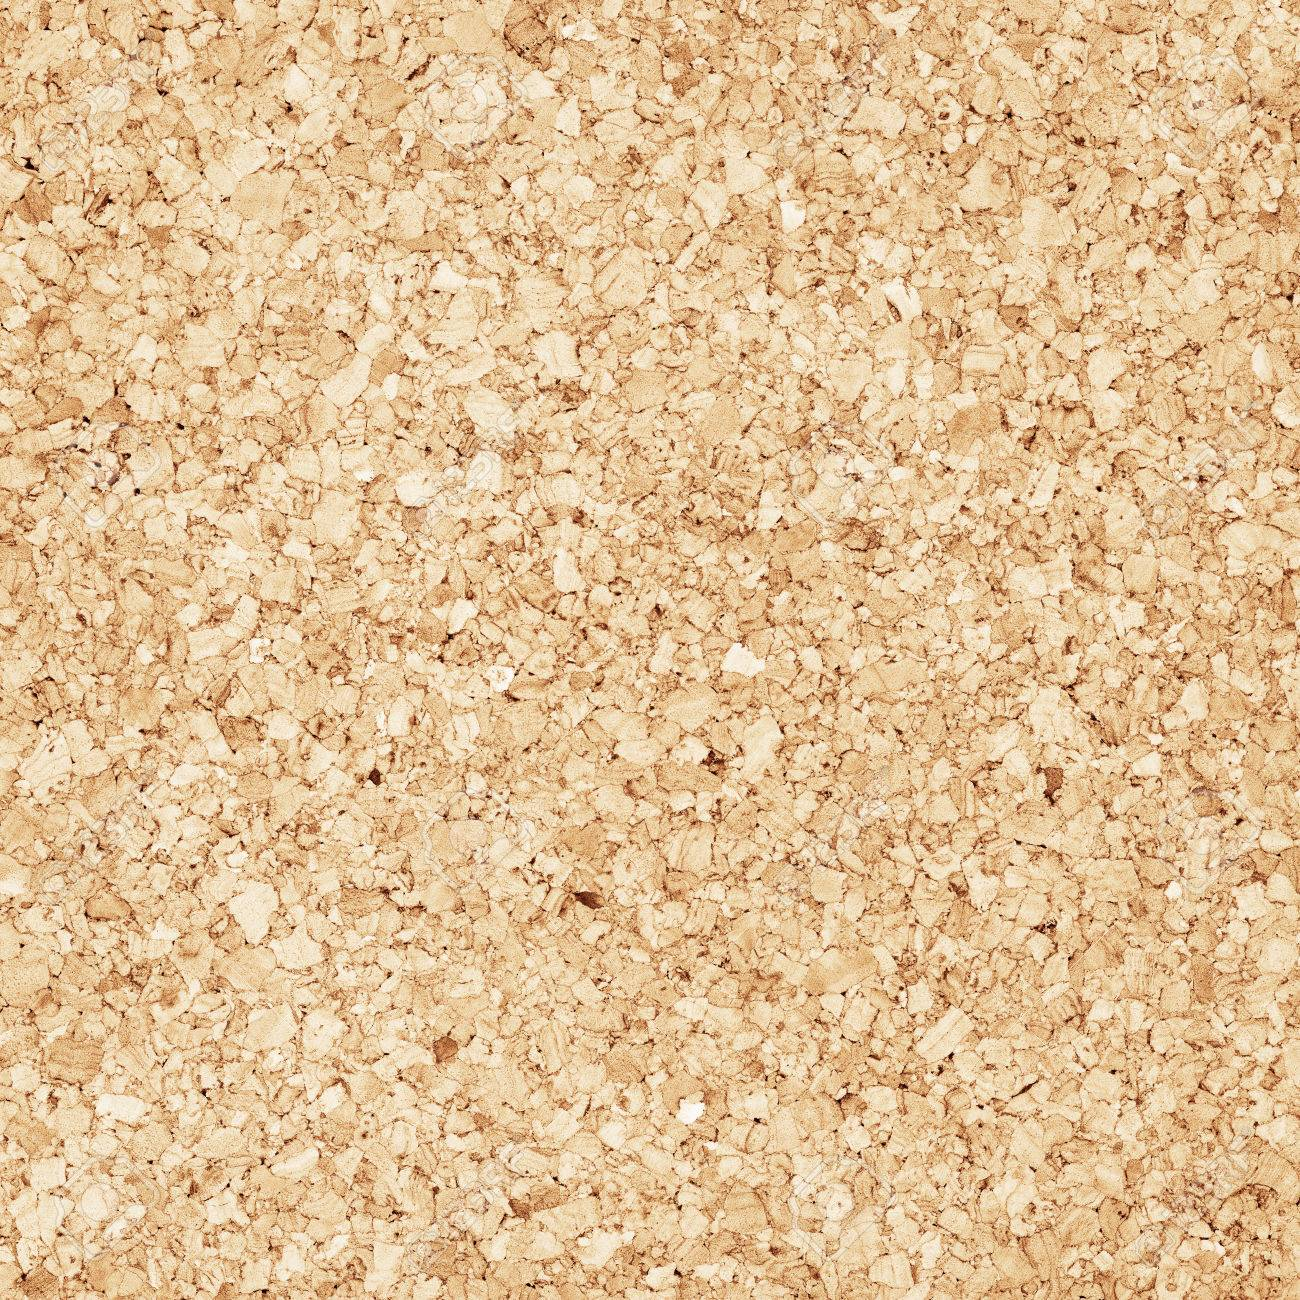 Compressed brown cork board background Stock Photo - 22974618